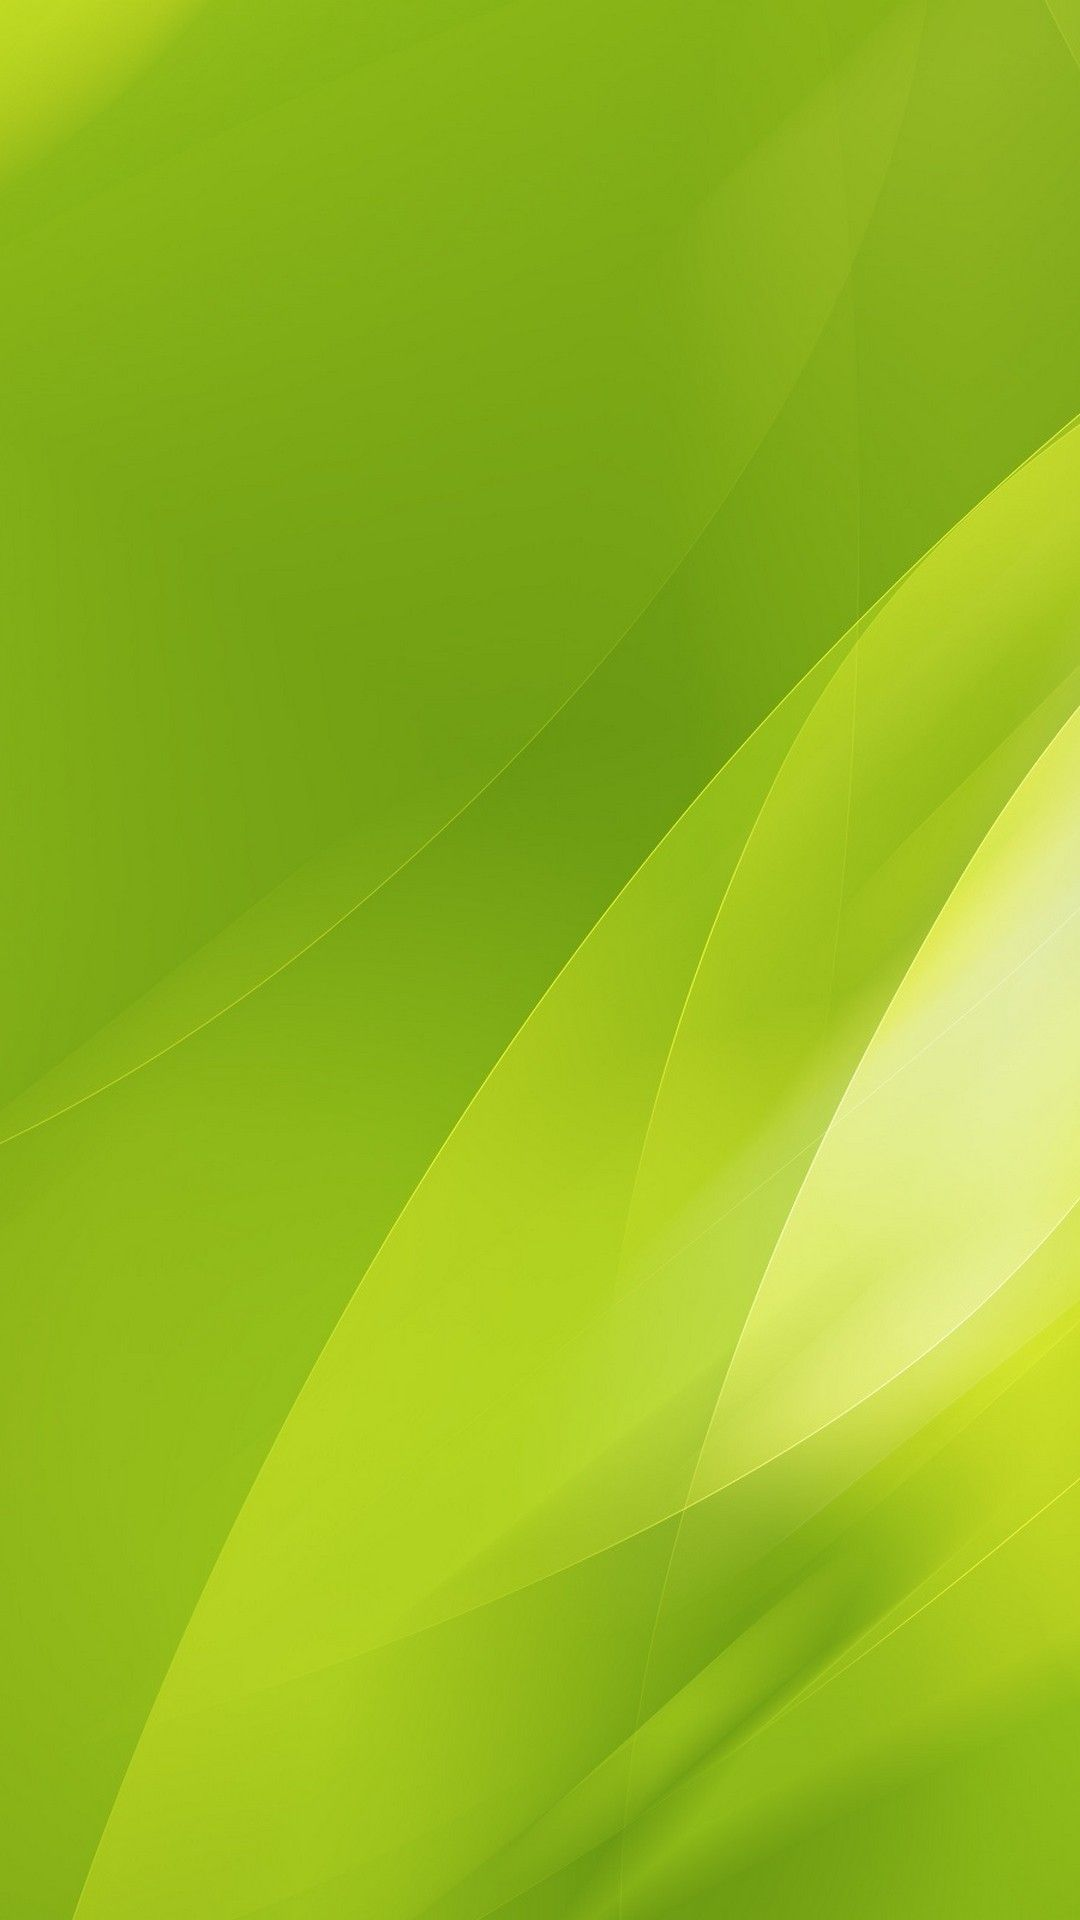 lime green android wallpaper - 2019 | backgrounds 2 | pinterest